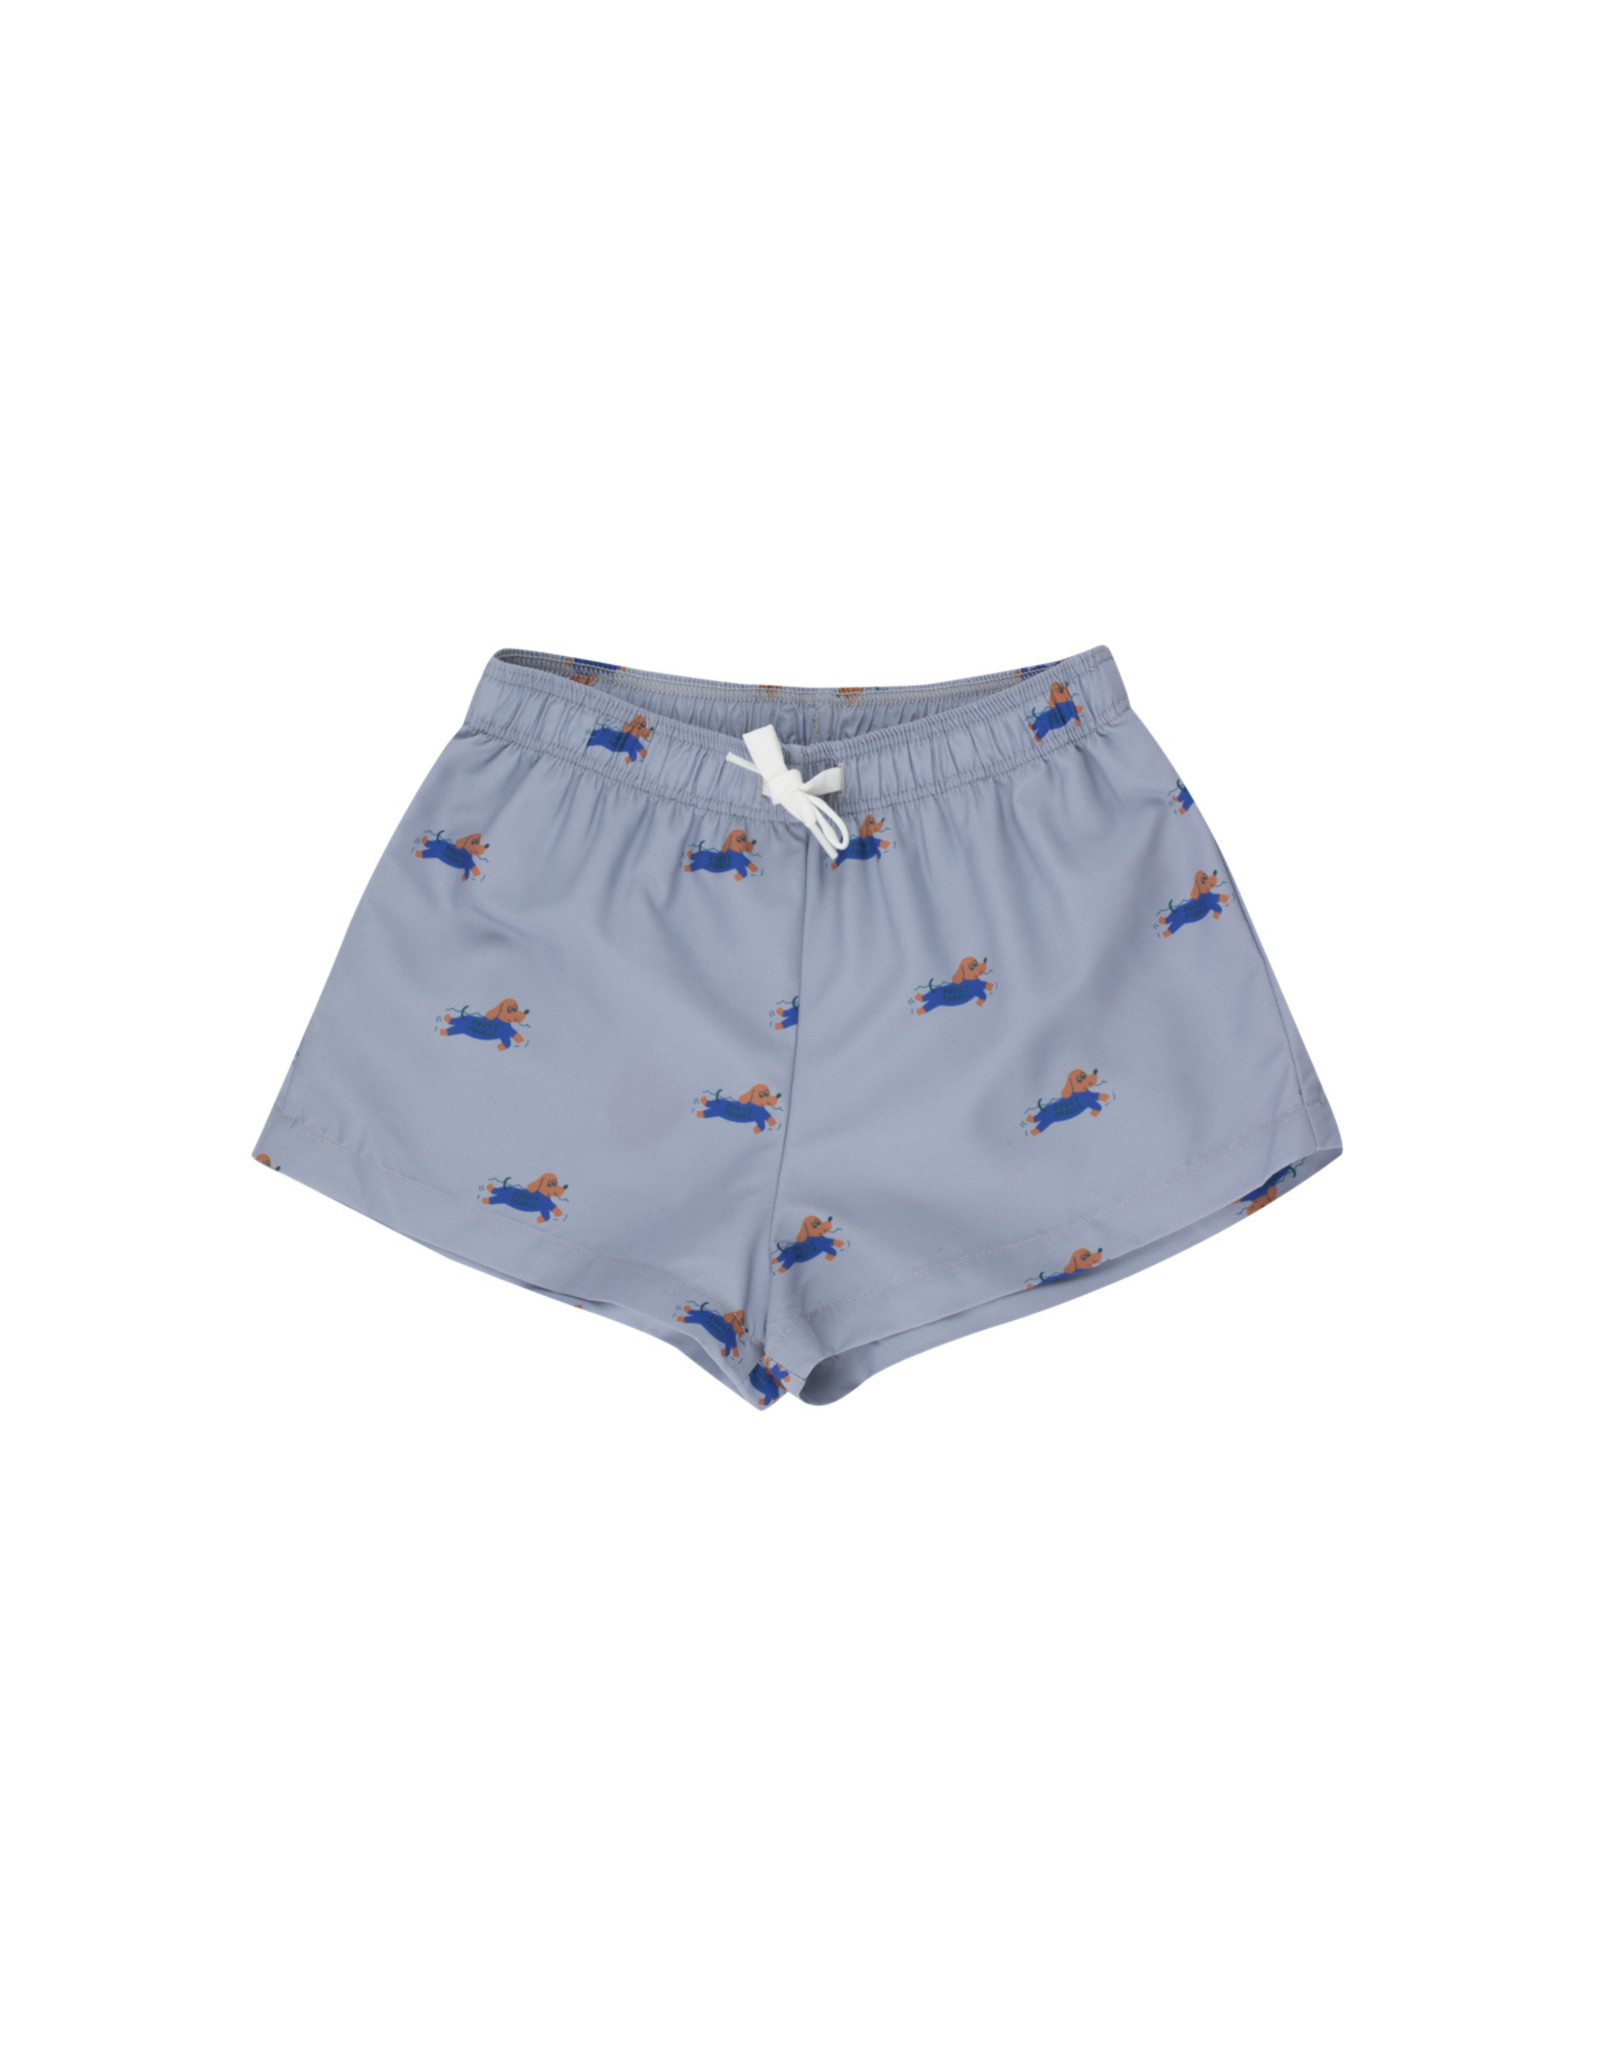 Tinycottons Doggy Paddle Trunks